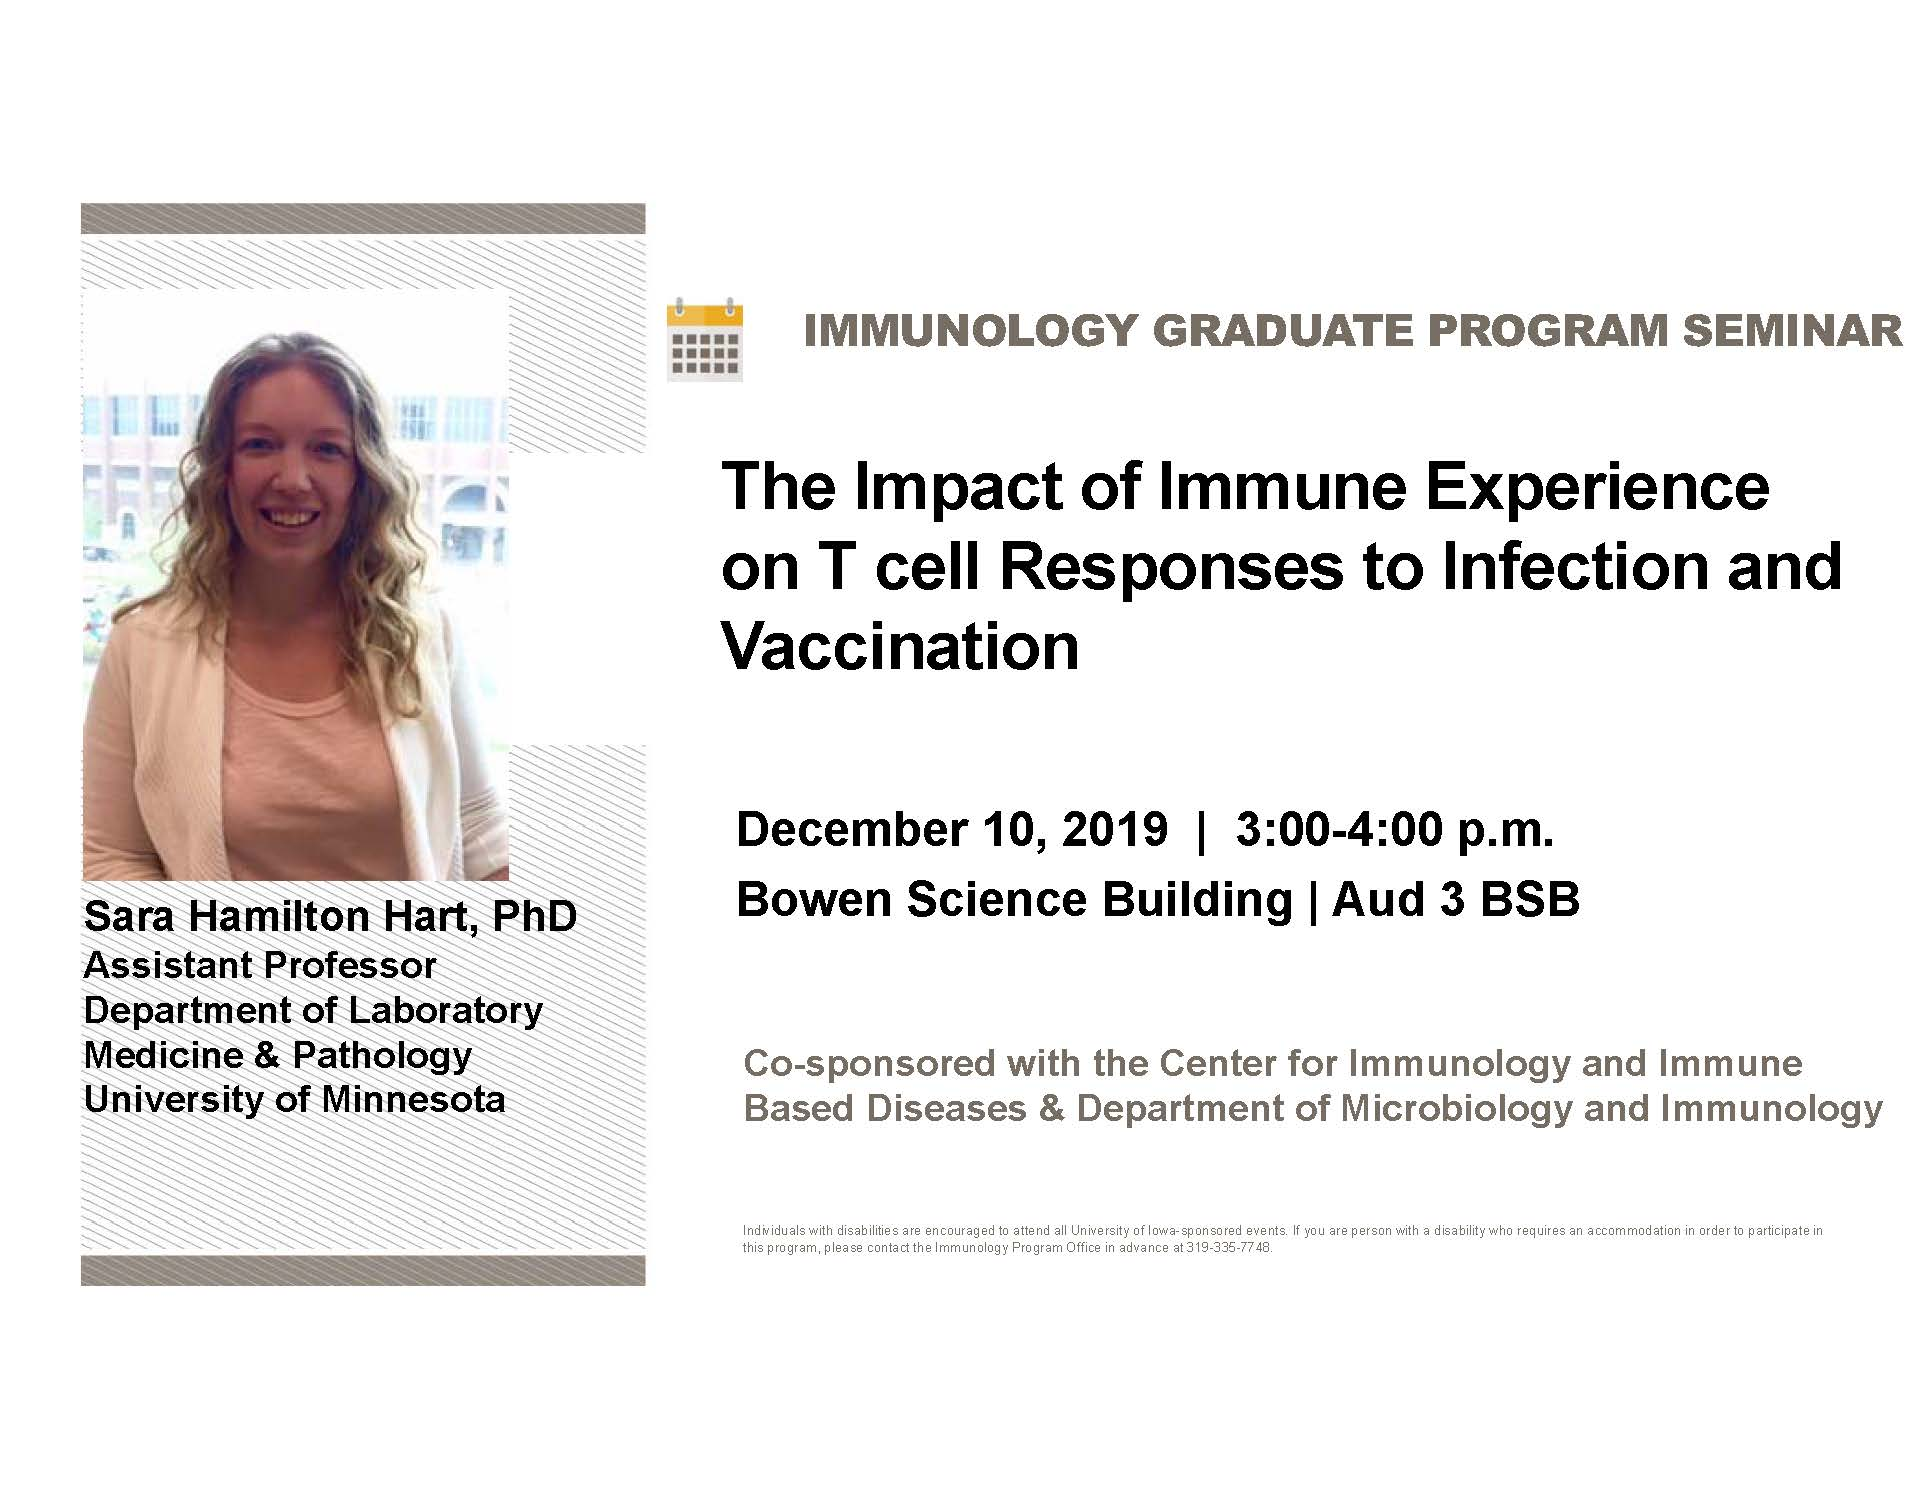 """Seminar Speaker - Sara Hamilton Hart, Ph.D. -  """"The Impact of Immune Experience on T cell Responses to Infection and Vaccination"""" promotional image"""